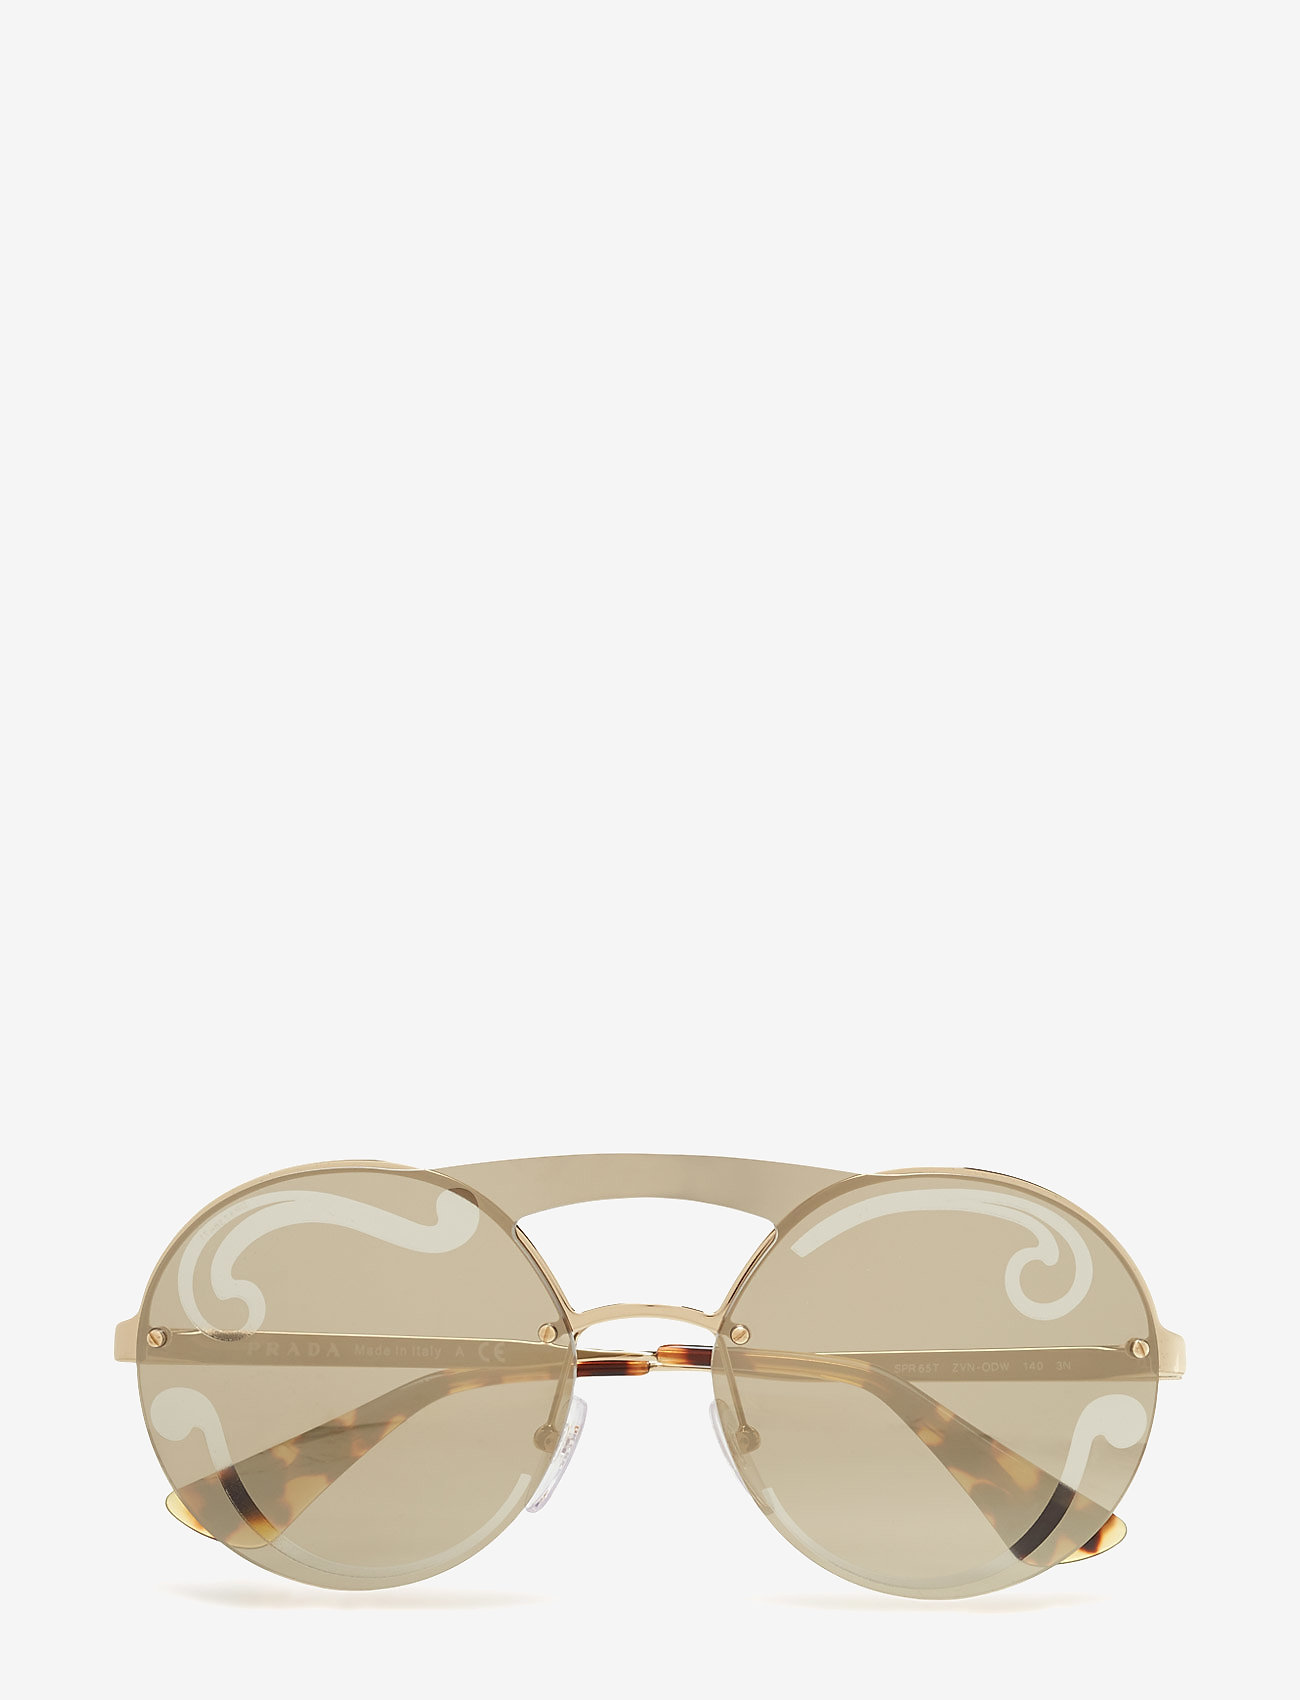 Prada Sunglasses - Not Defined - round frame - pale gold - 0